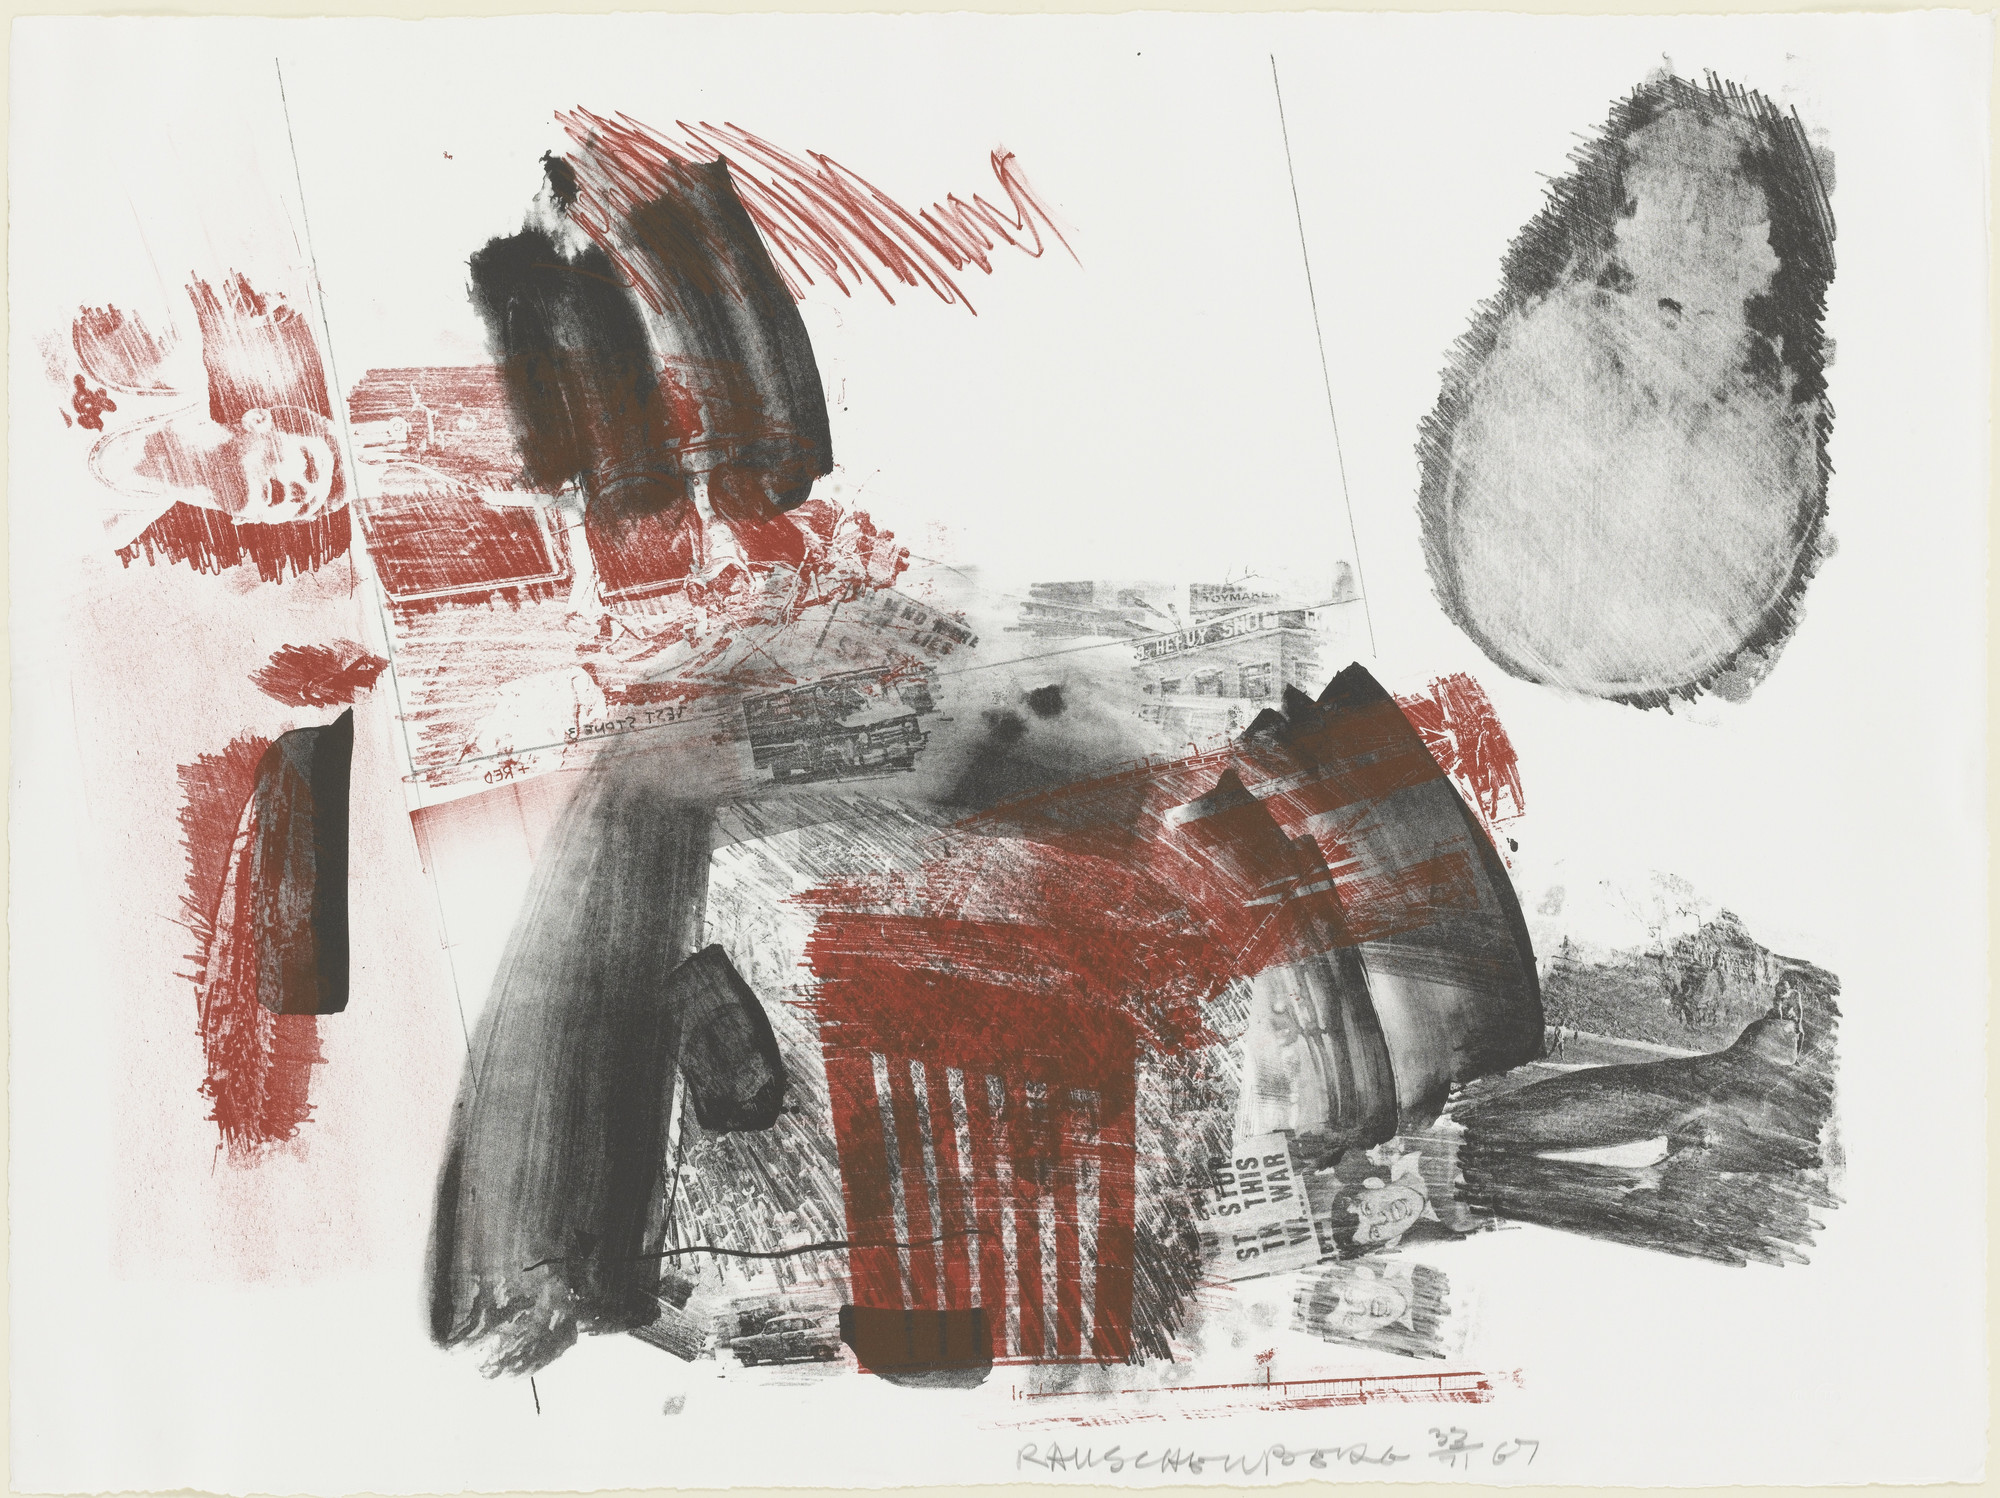 Robert Rauschenberg. Test Stone #3 (Red with Dante Man) from Booster and 7 Studies. 1967